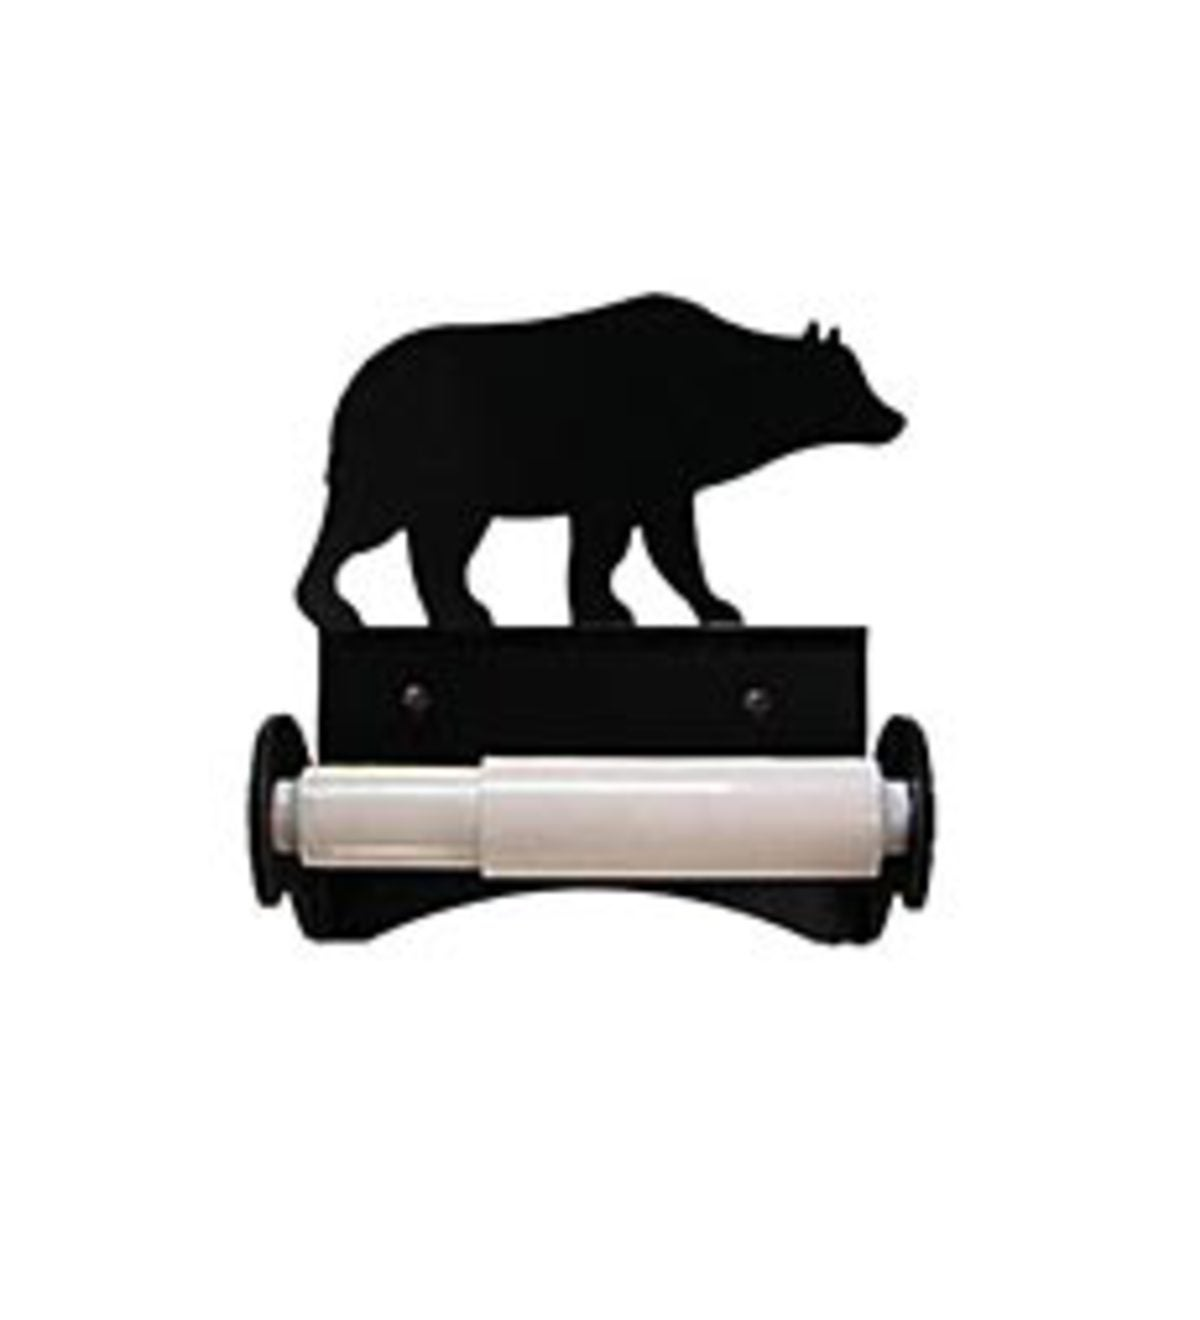 USA-Made Wrought Iron Roller-Style Toilet Paper Holder - Bear